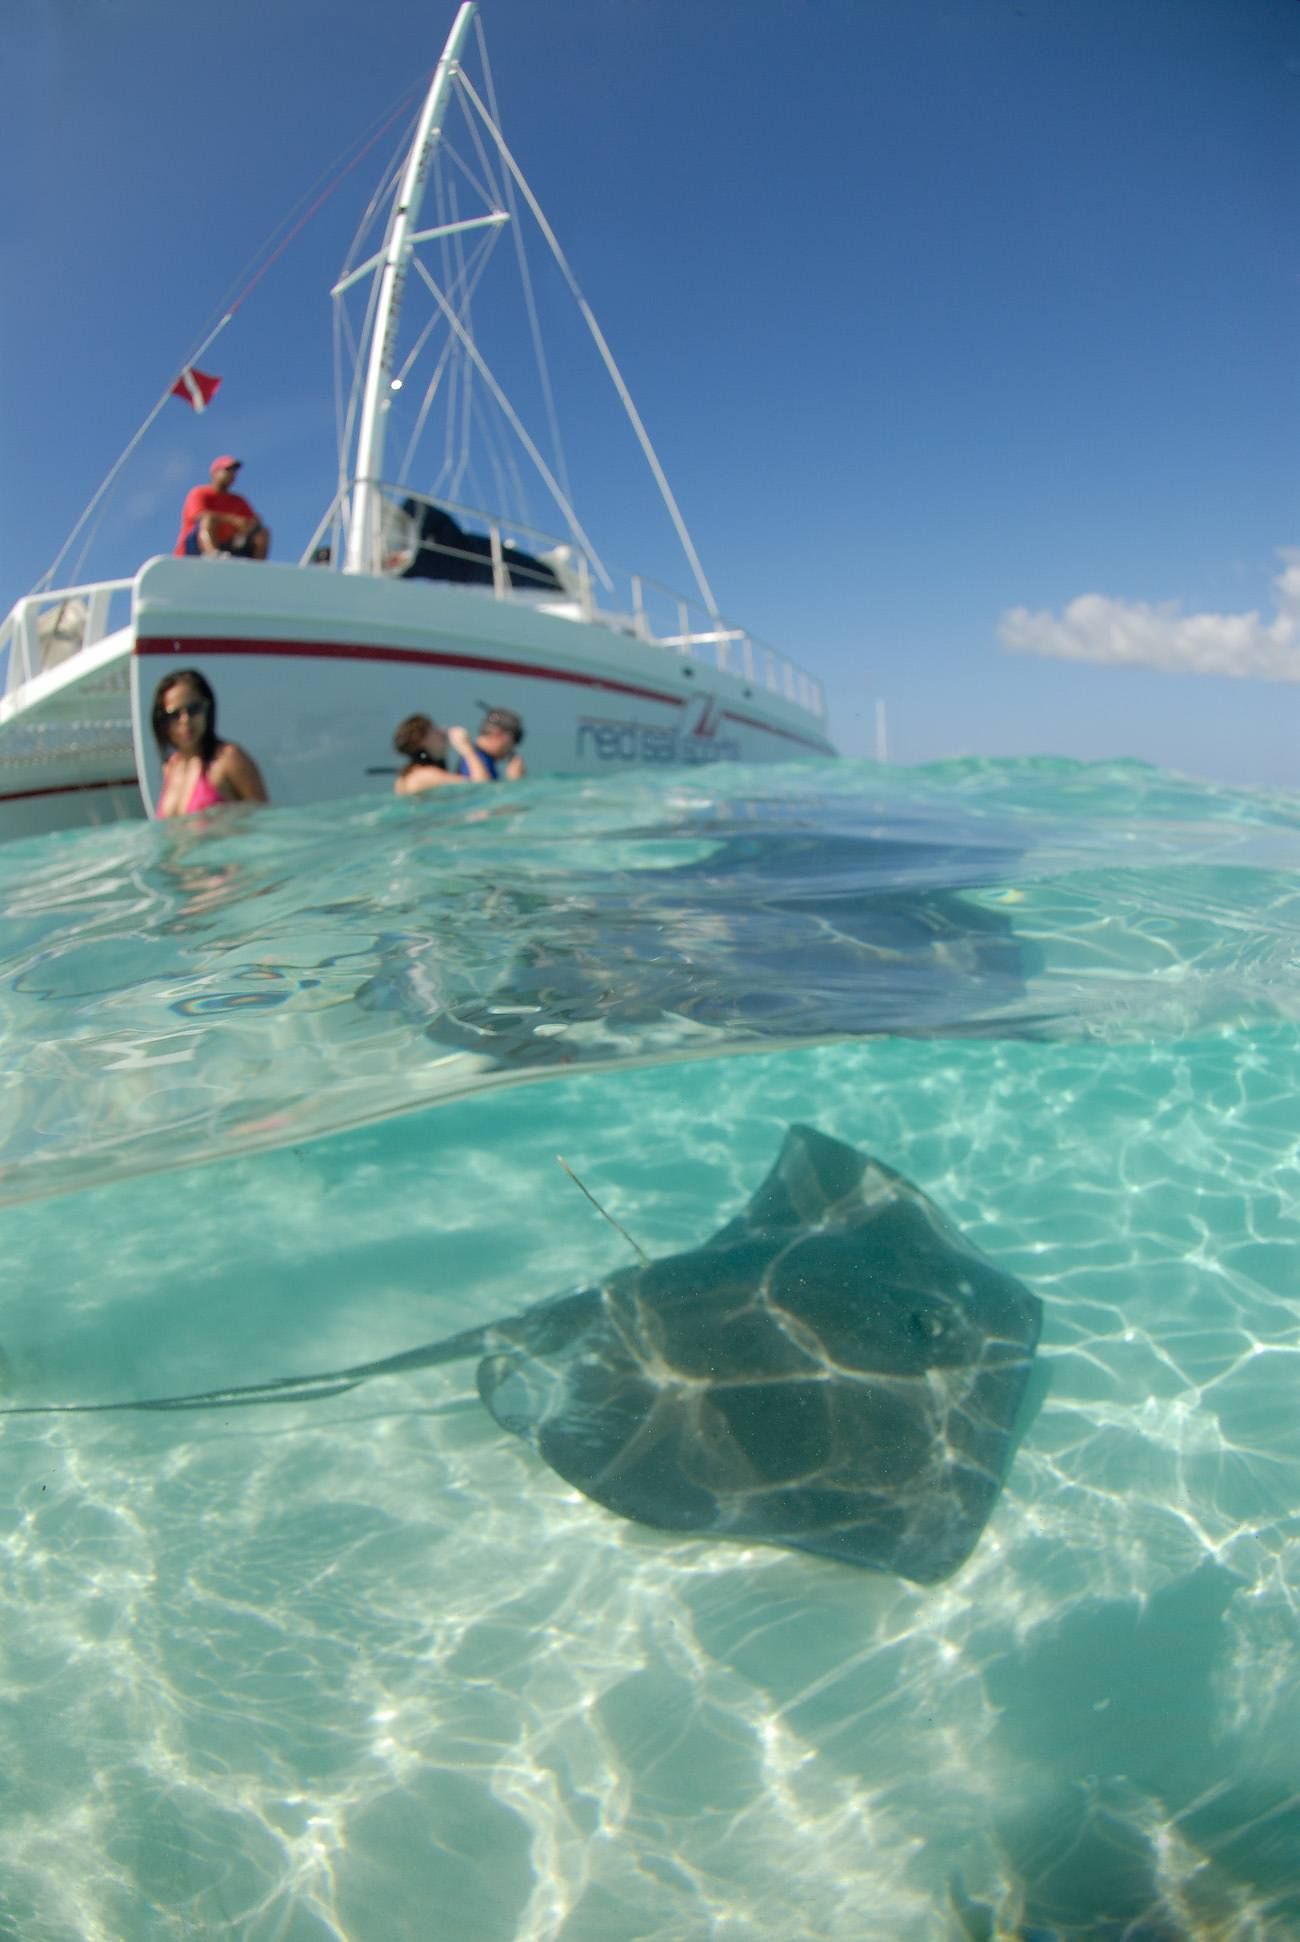 When in Grand Cayman, visit Stingray City. It's a sandbar with water 3-4' deep where you can stand and snorkel with stingrays!